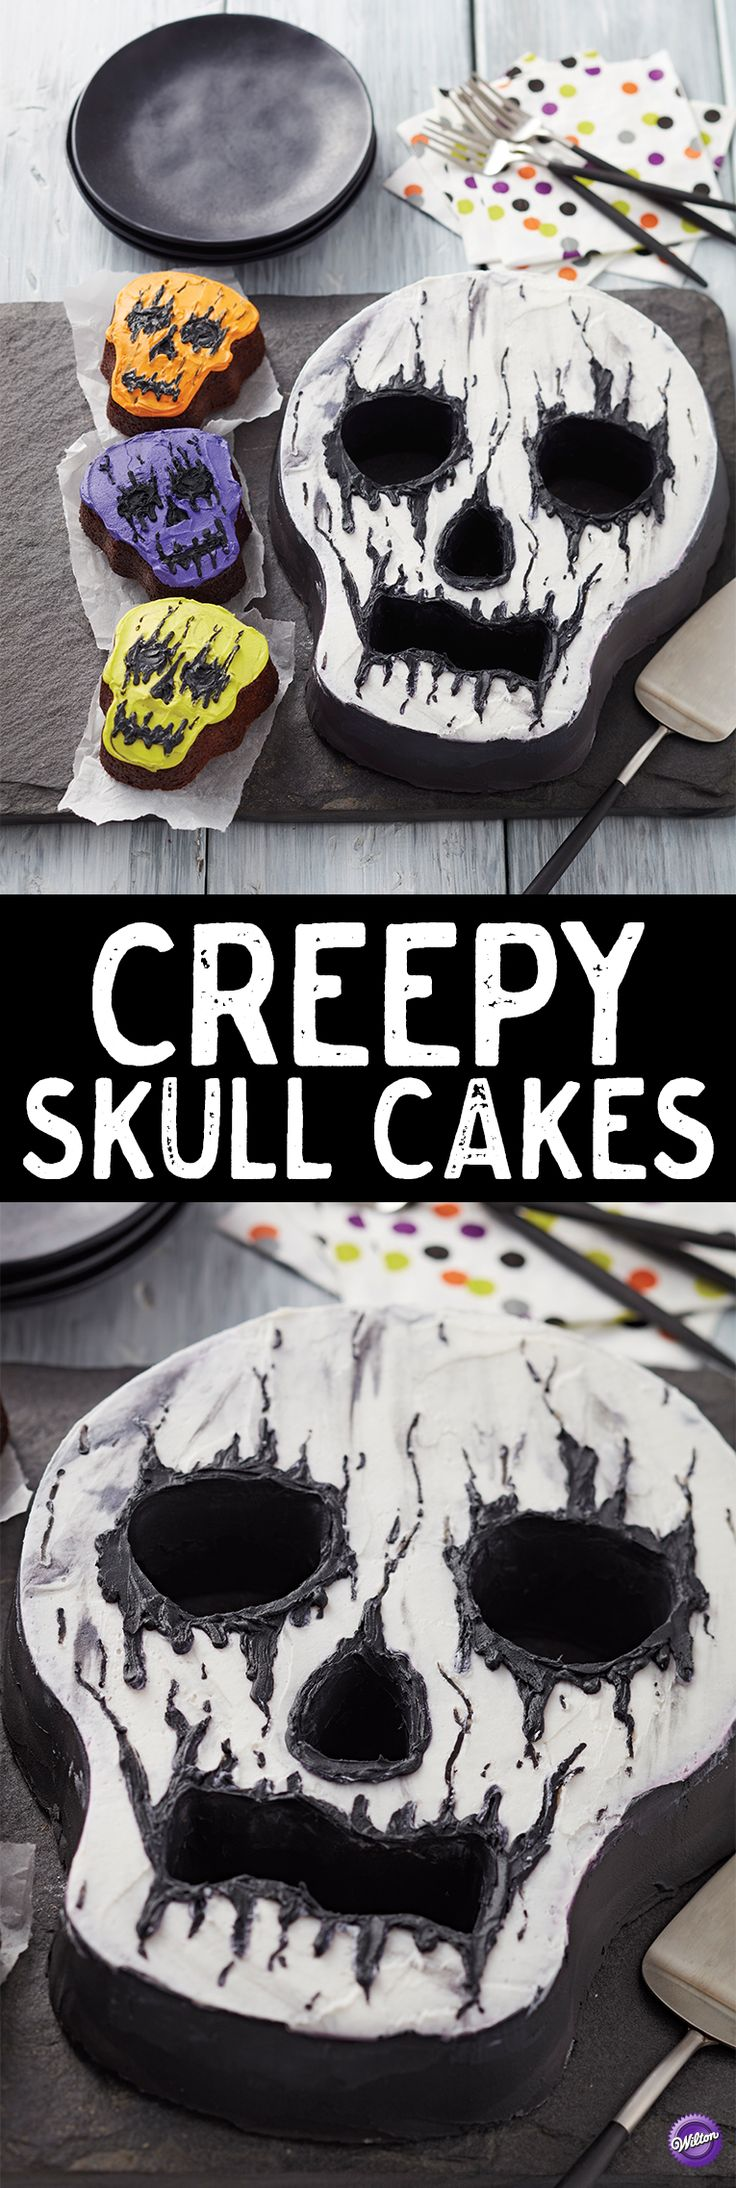 No bones about it, this Creepy Skull Cake is a great treat for your Halloween party! Simple enough for decorators of all skill levels, this cake can be completed in only a few easy steps. Best of all, the Skull Tube Cake Pan has holes for the eyes, nose and mouth of your skull, so your cake comes out all ready to decorate! A spooky cake with great detailing, this cake definitely tastes much better than it looks!